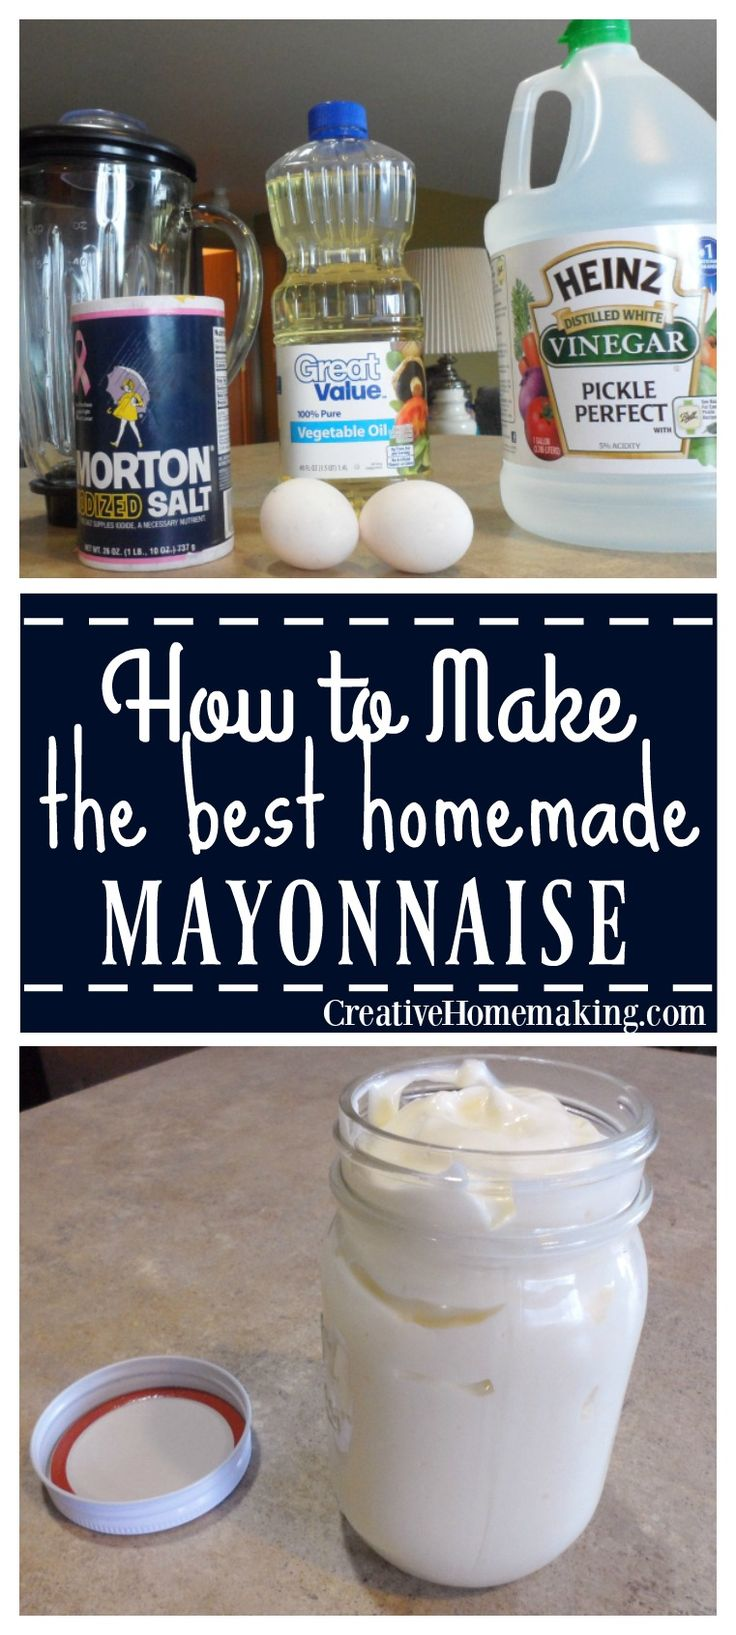 25 Best Ideas About Mayonnaise Recipe On Pinterest Homemade Mayonaise Mayonnaise And